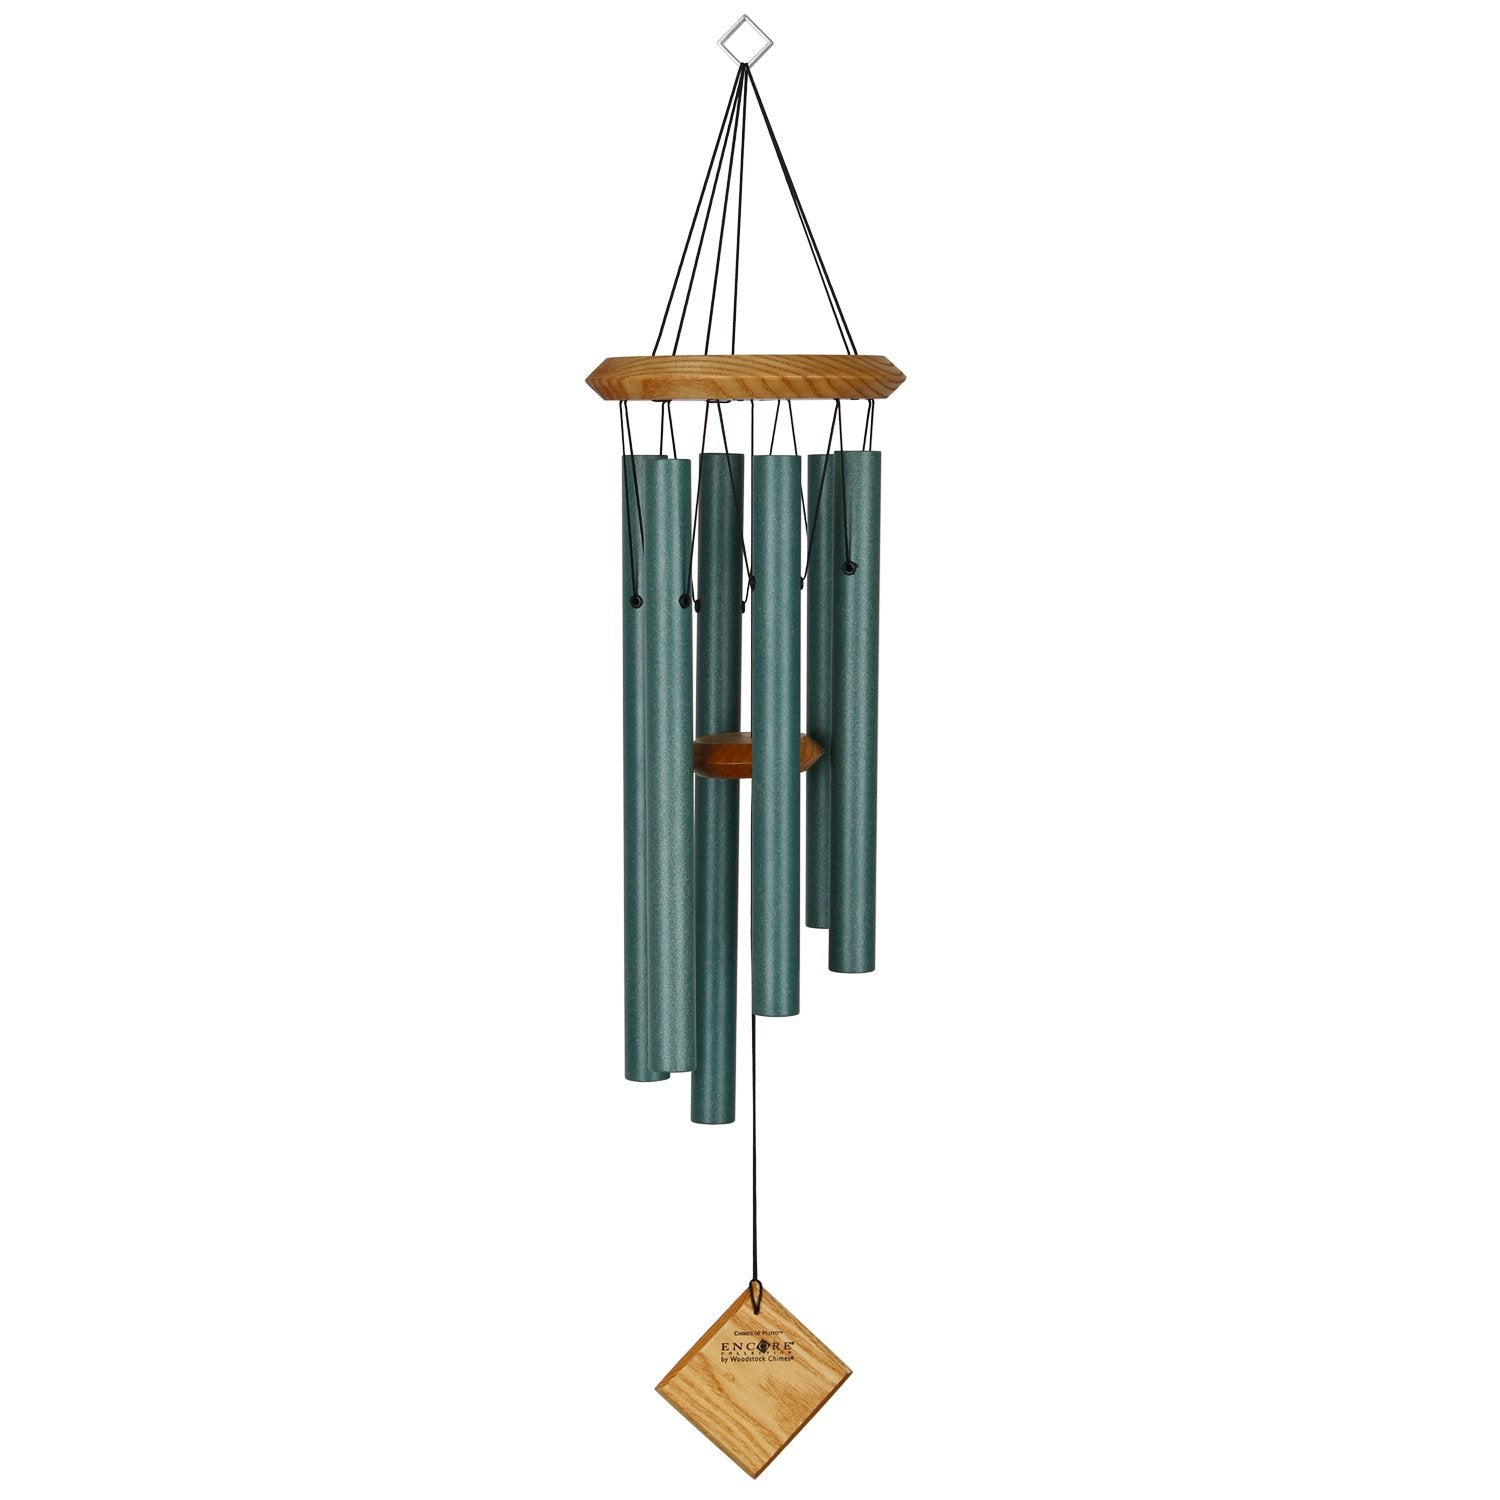 Encore Chimes of Pluto - Verdigris full product image